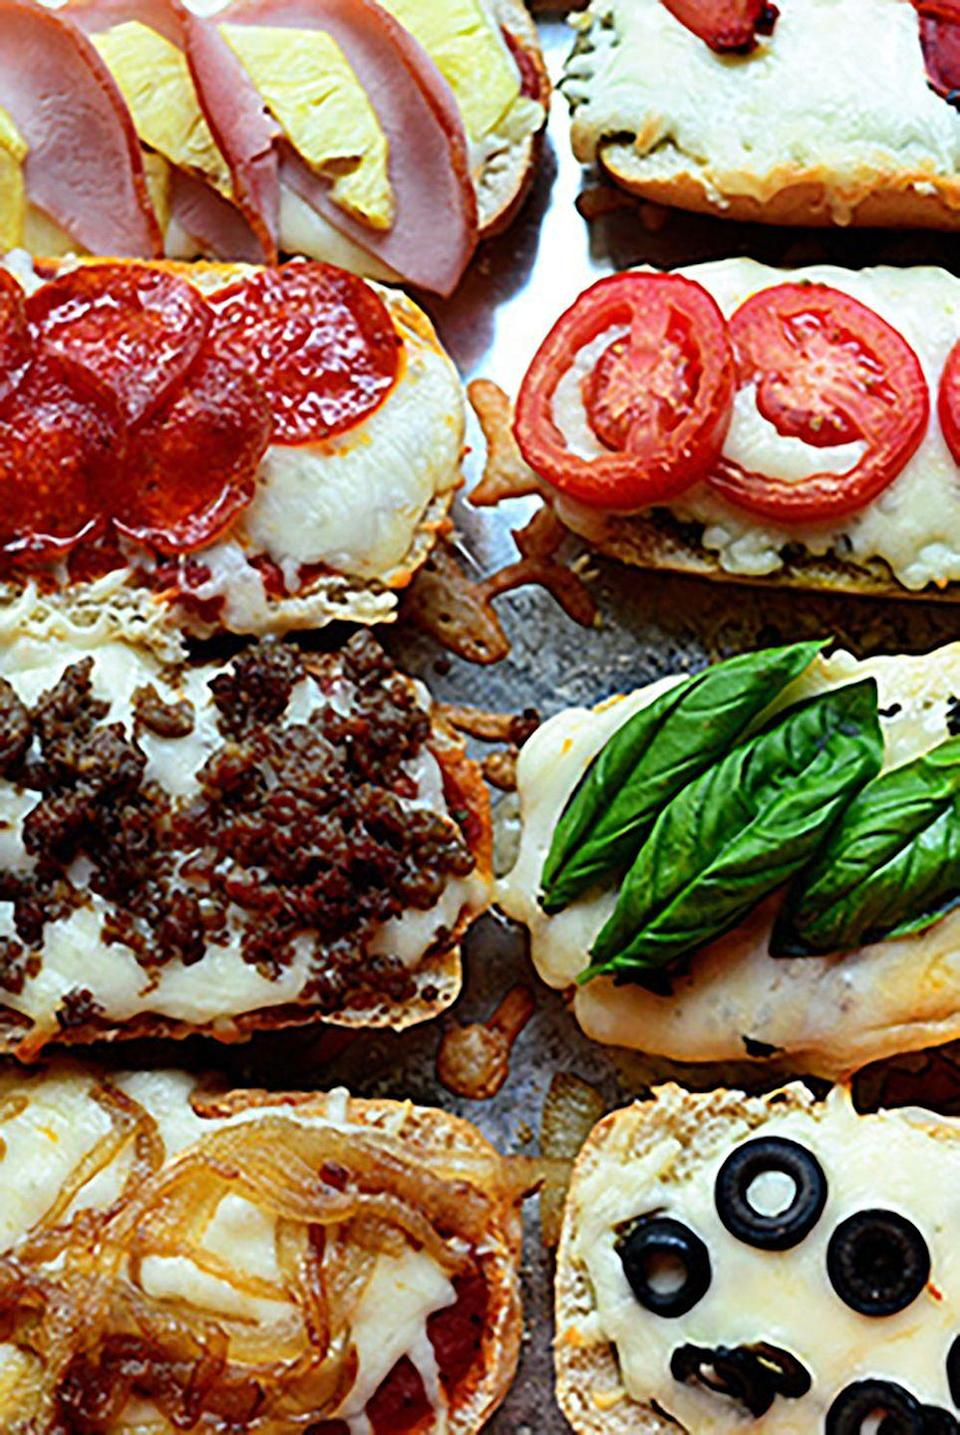 """<p>The whole family can be involved in adding their favorite toppings to slices of French bread in this quick pizza recipe.</p><p><strong>Get the recipe at <a href=""""http://thepioneerwoman.com/cooking/french-bread-pizzas/"""" rel=""""nofollow noopener"""" target=""""_blank"""" data-ylk=""""slk:The Pioneer Woman"""" class=""""link rapid-noclick-resp"""">The Pioneer Woman</a>.</strong><br></p>"""